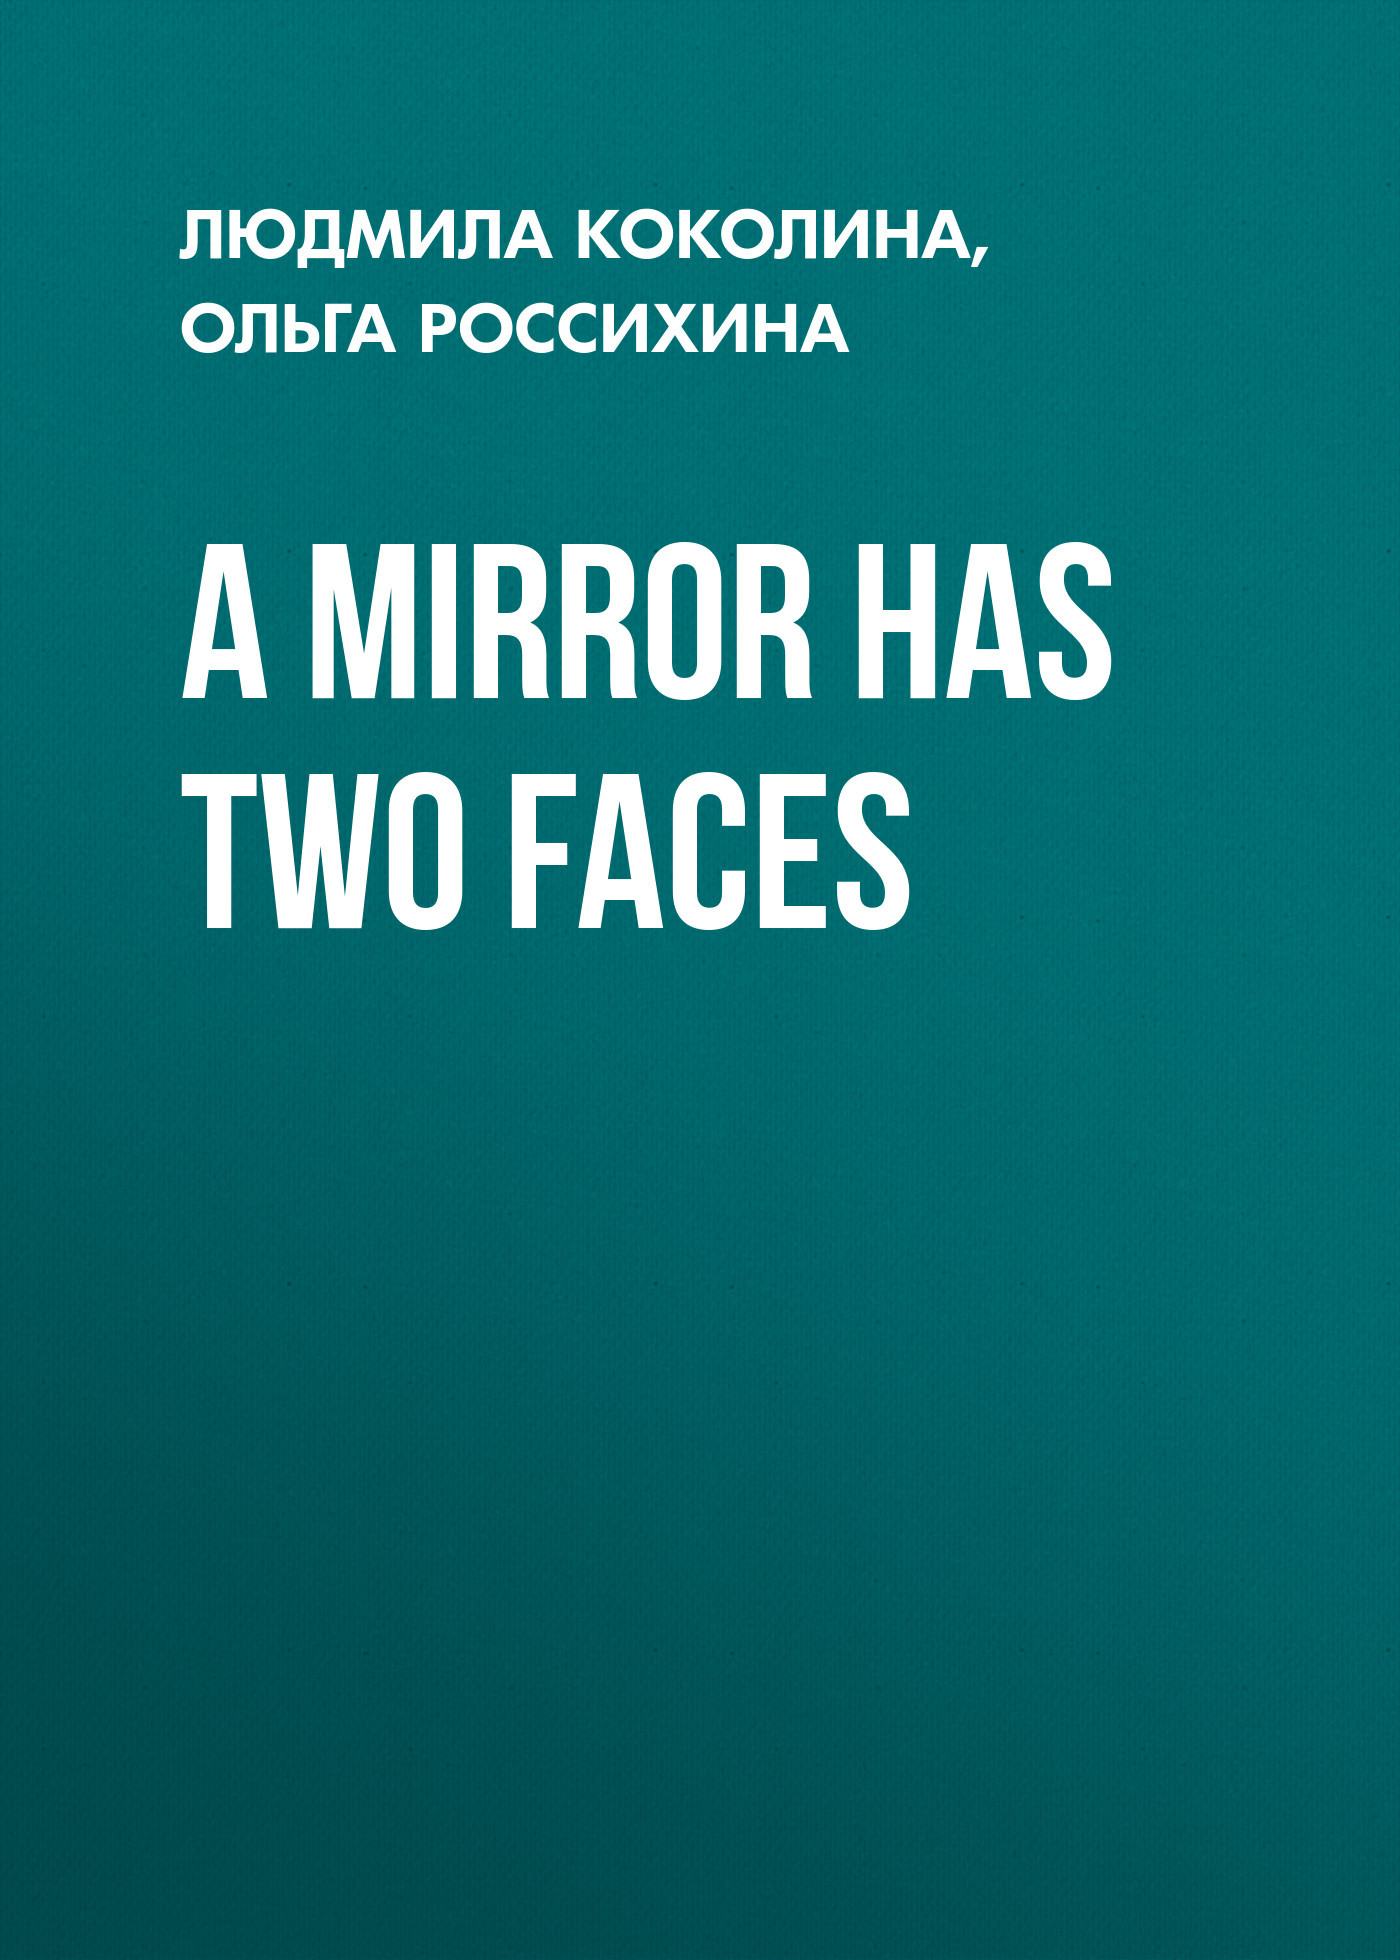 A Mirror Has Two Faces